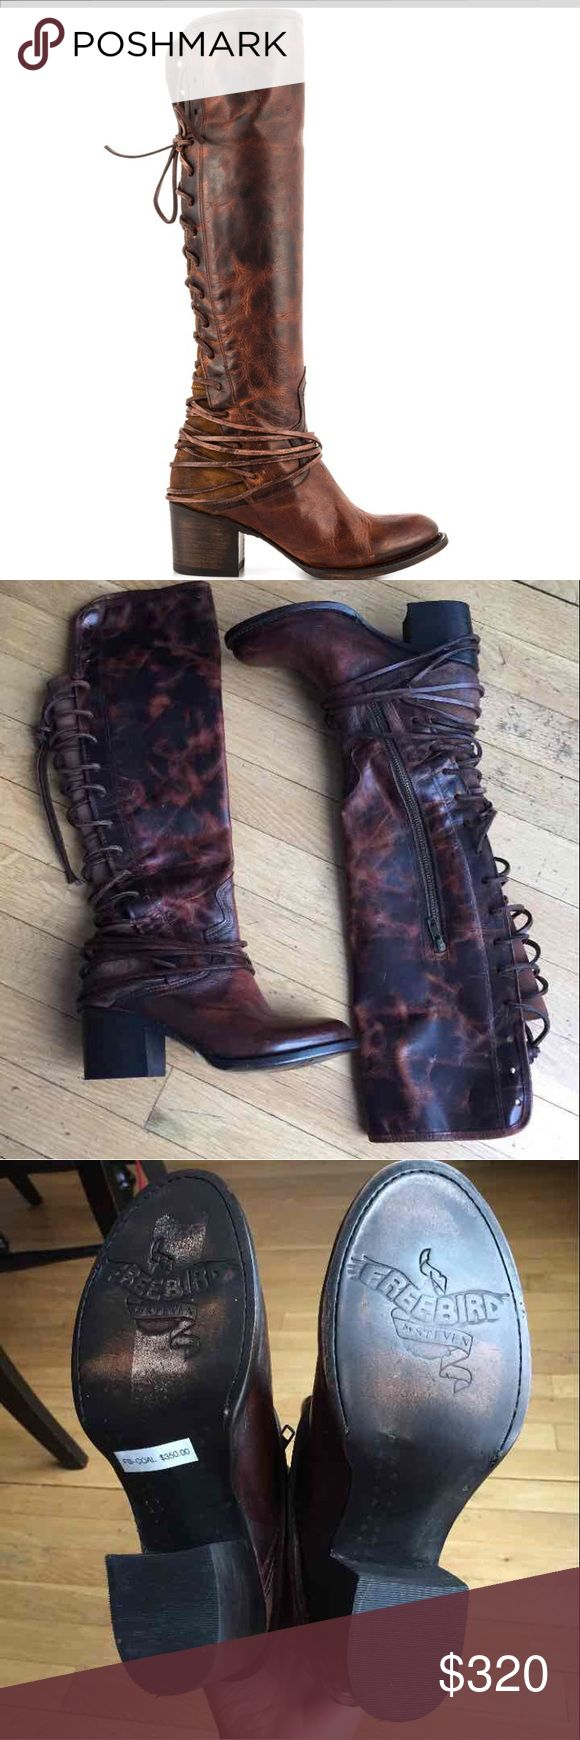 Steve Madden Freebird Coal Cognac Boots Steve Madden Freebird Coal Cognac Boot  Quality: Brand New Size: 6 runs small  No Box Regular price- $350 !!!!NO LOW-BALL OFFERS Steve Madden Shoes Lace Up Boots